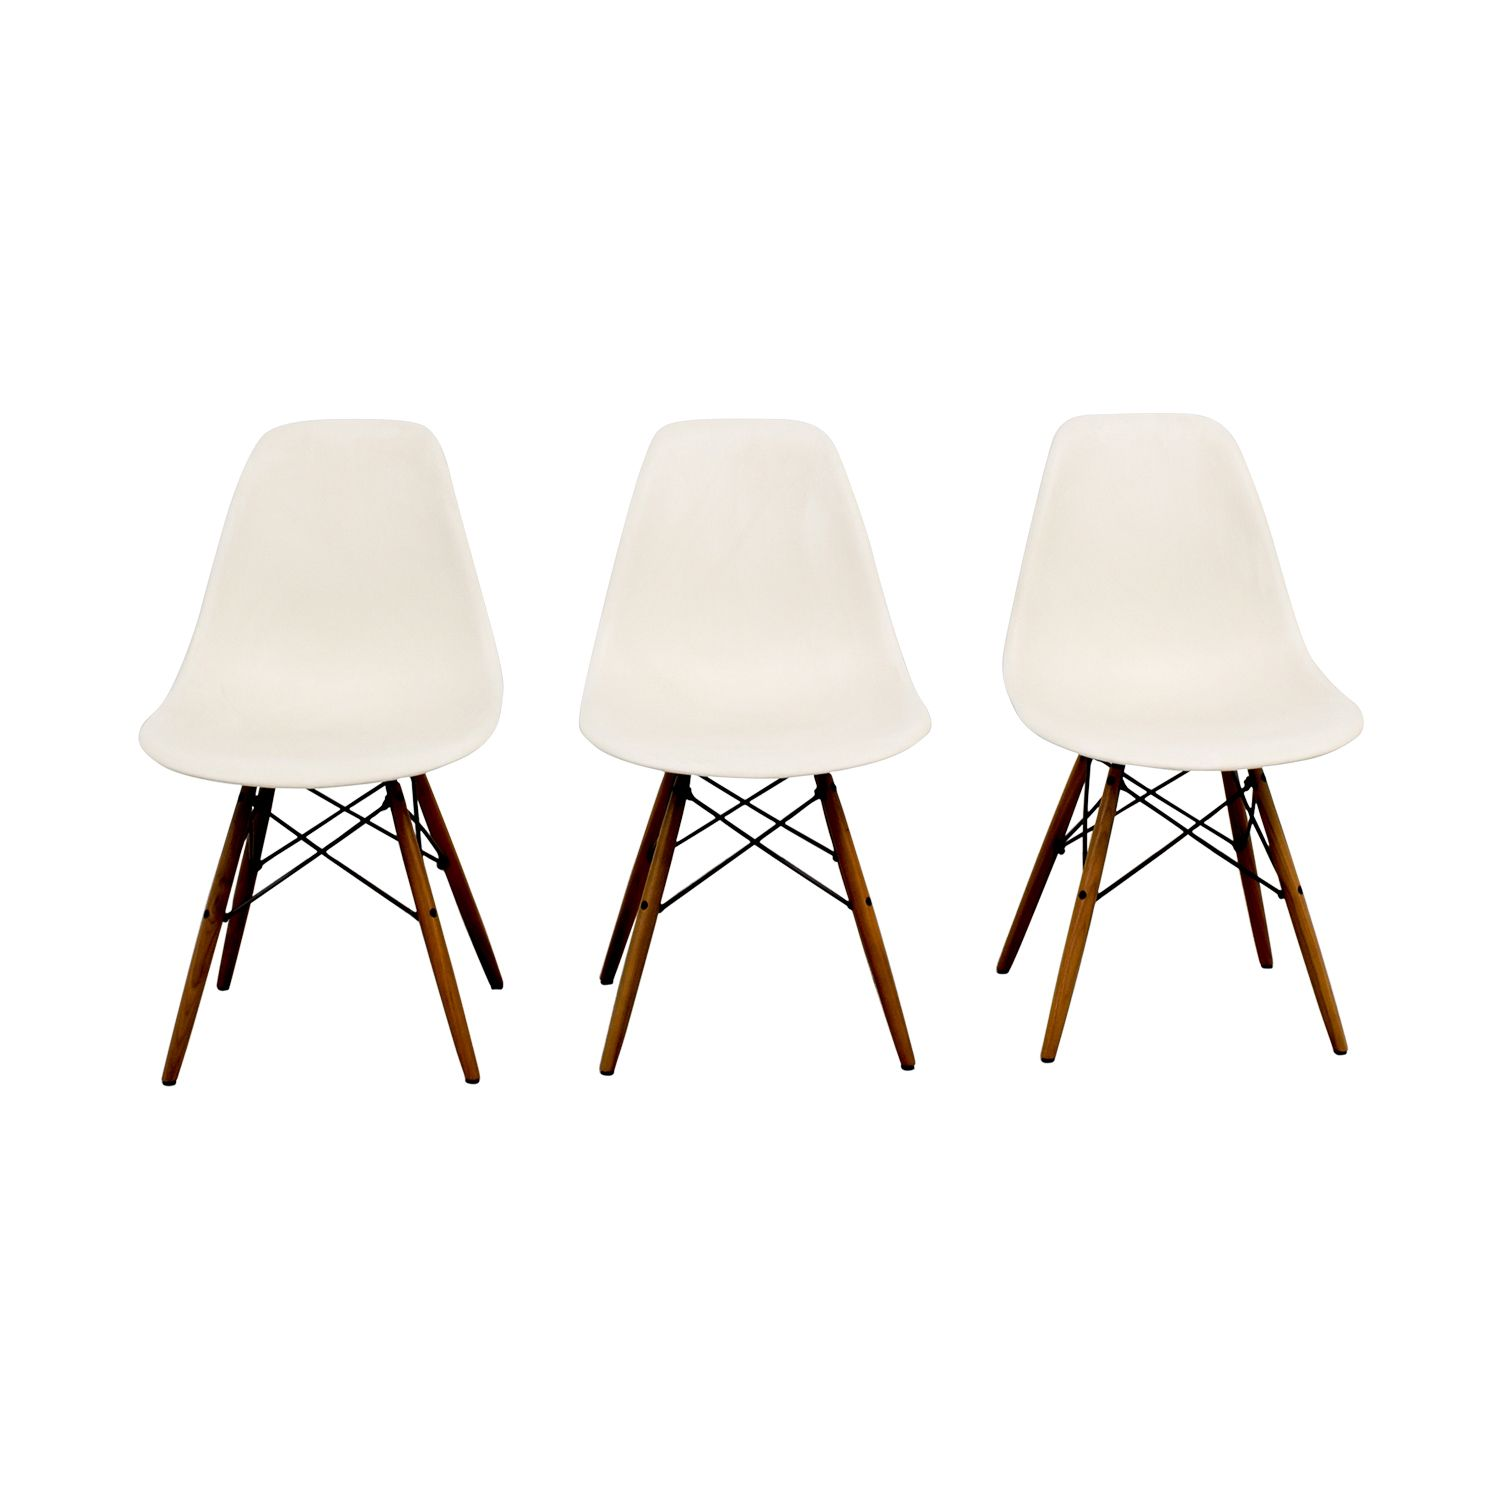 Eames Molded Plastic Side Chairs With Images Eames Molded Plastic Side Chair Side Chairs Chair